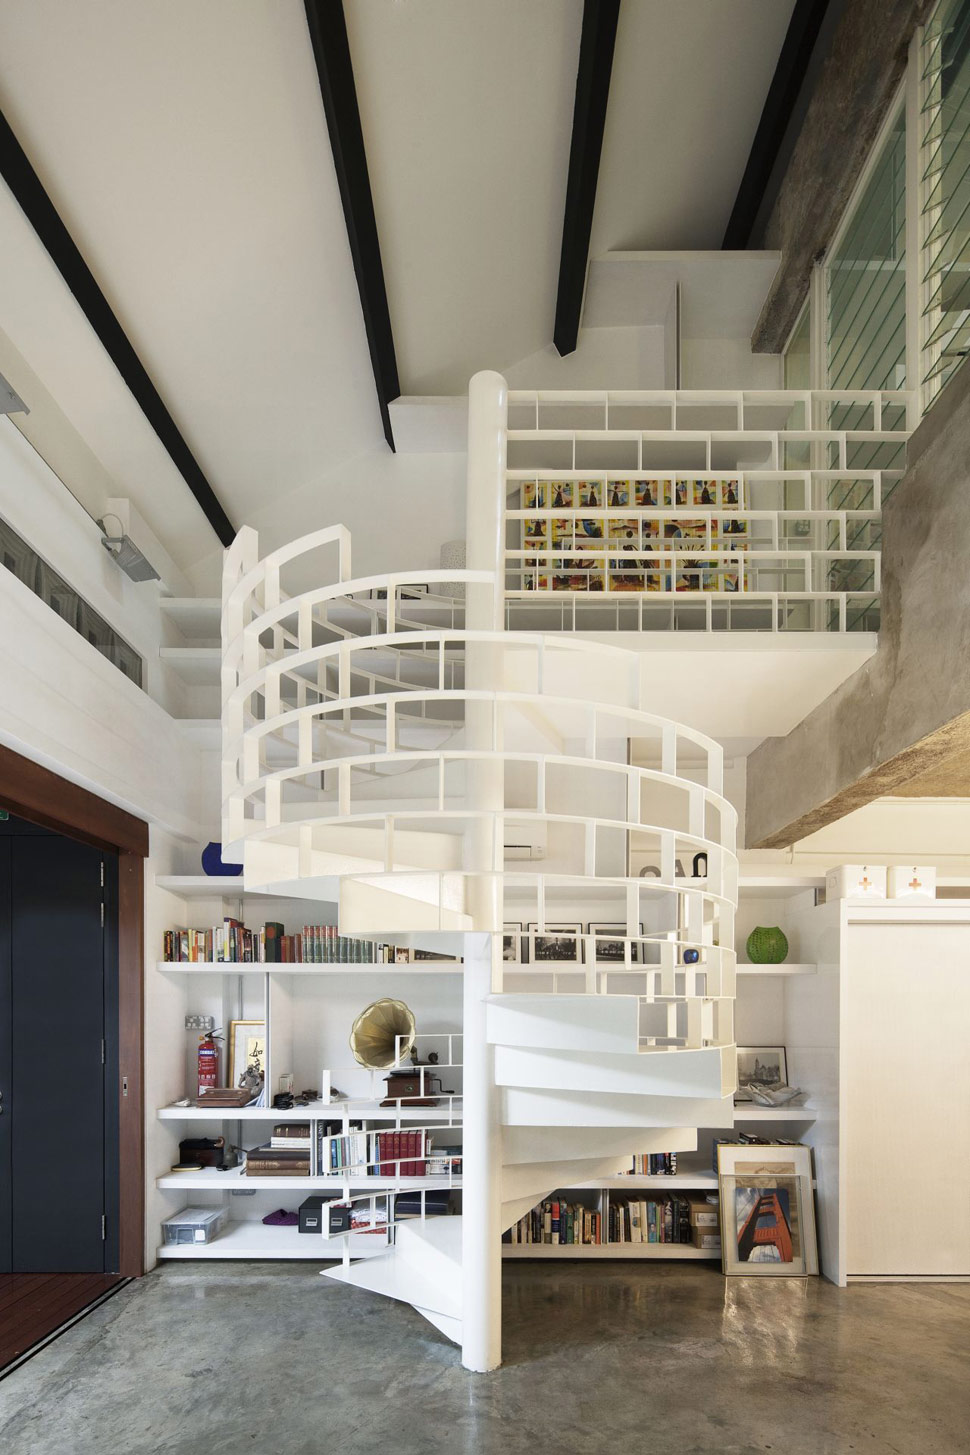 Image of: cool loft design ideas